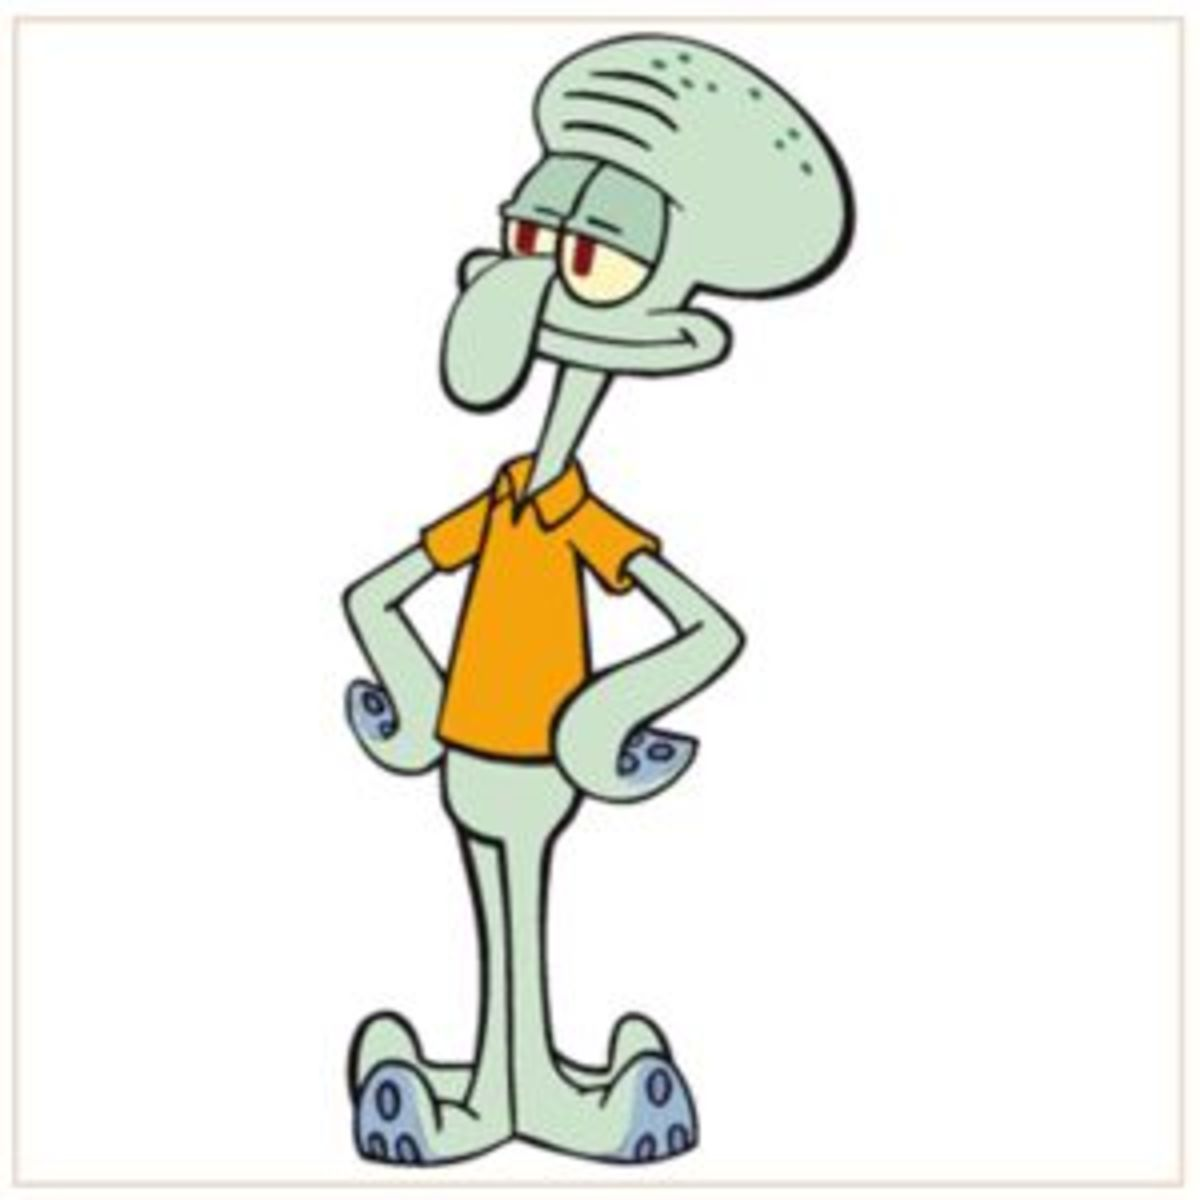 Squidward never met a mirror he didn't like!